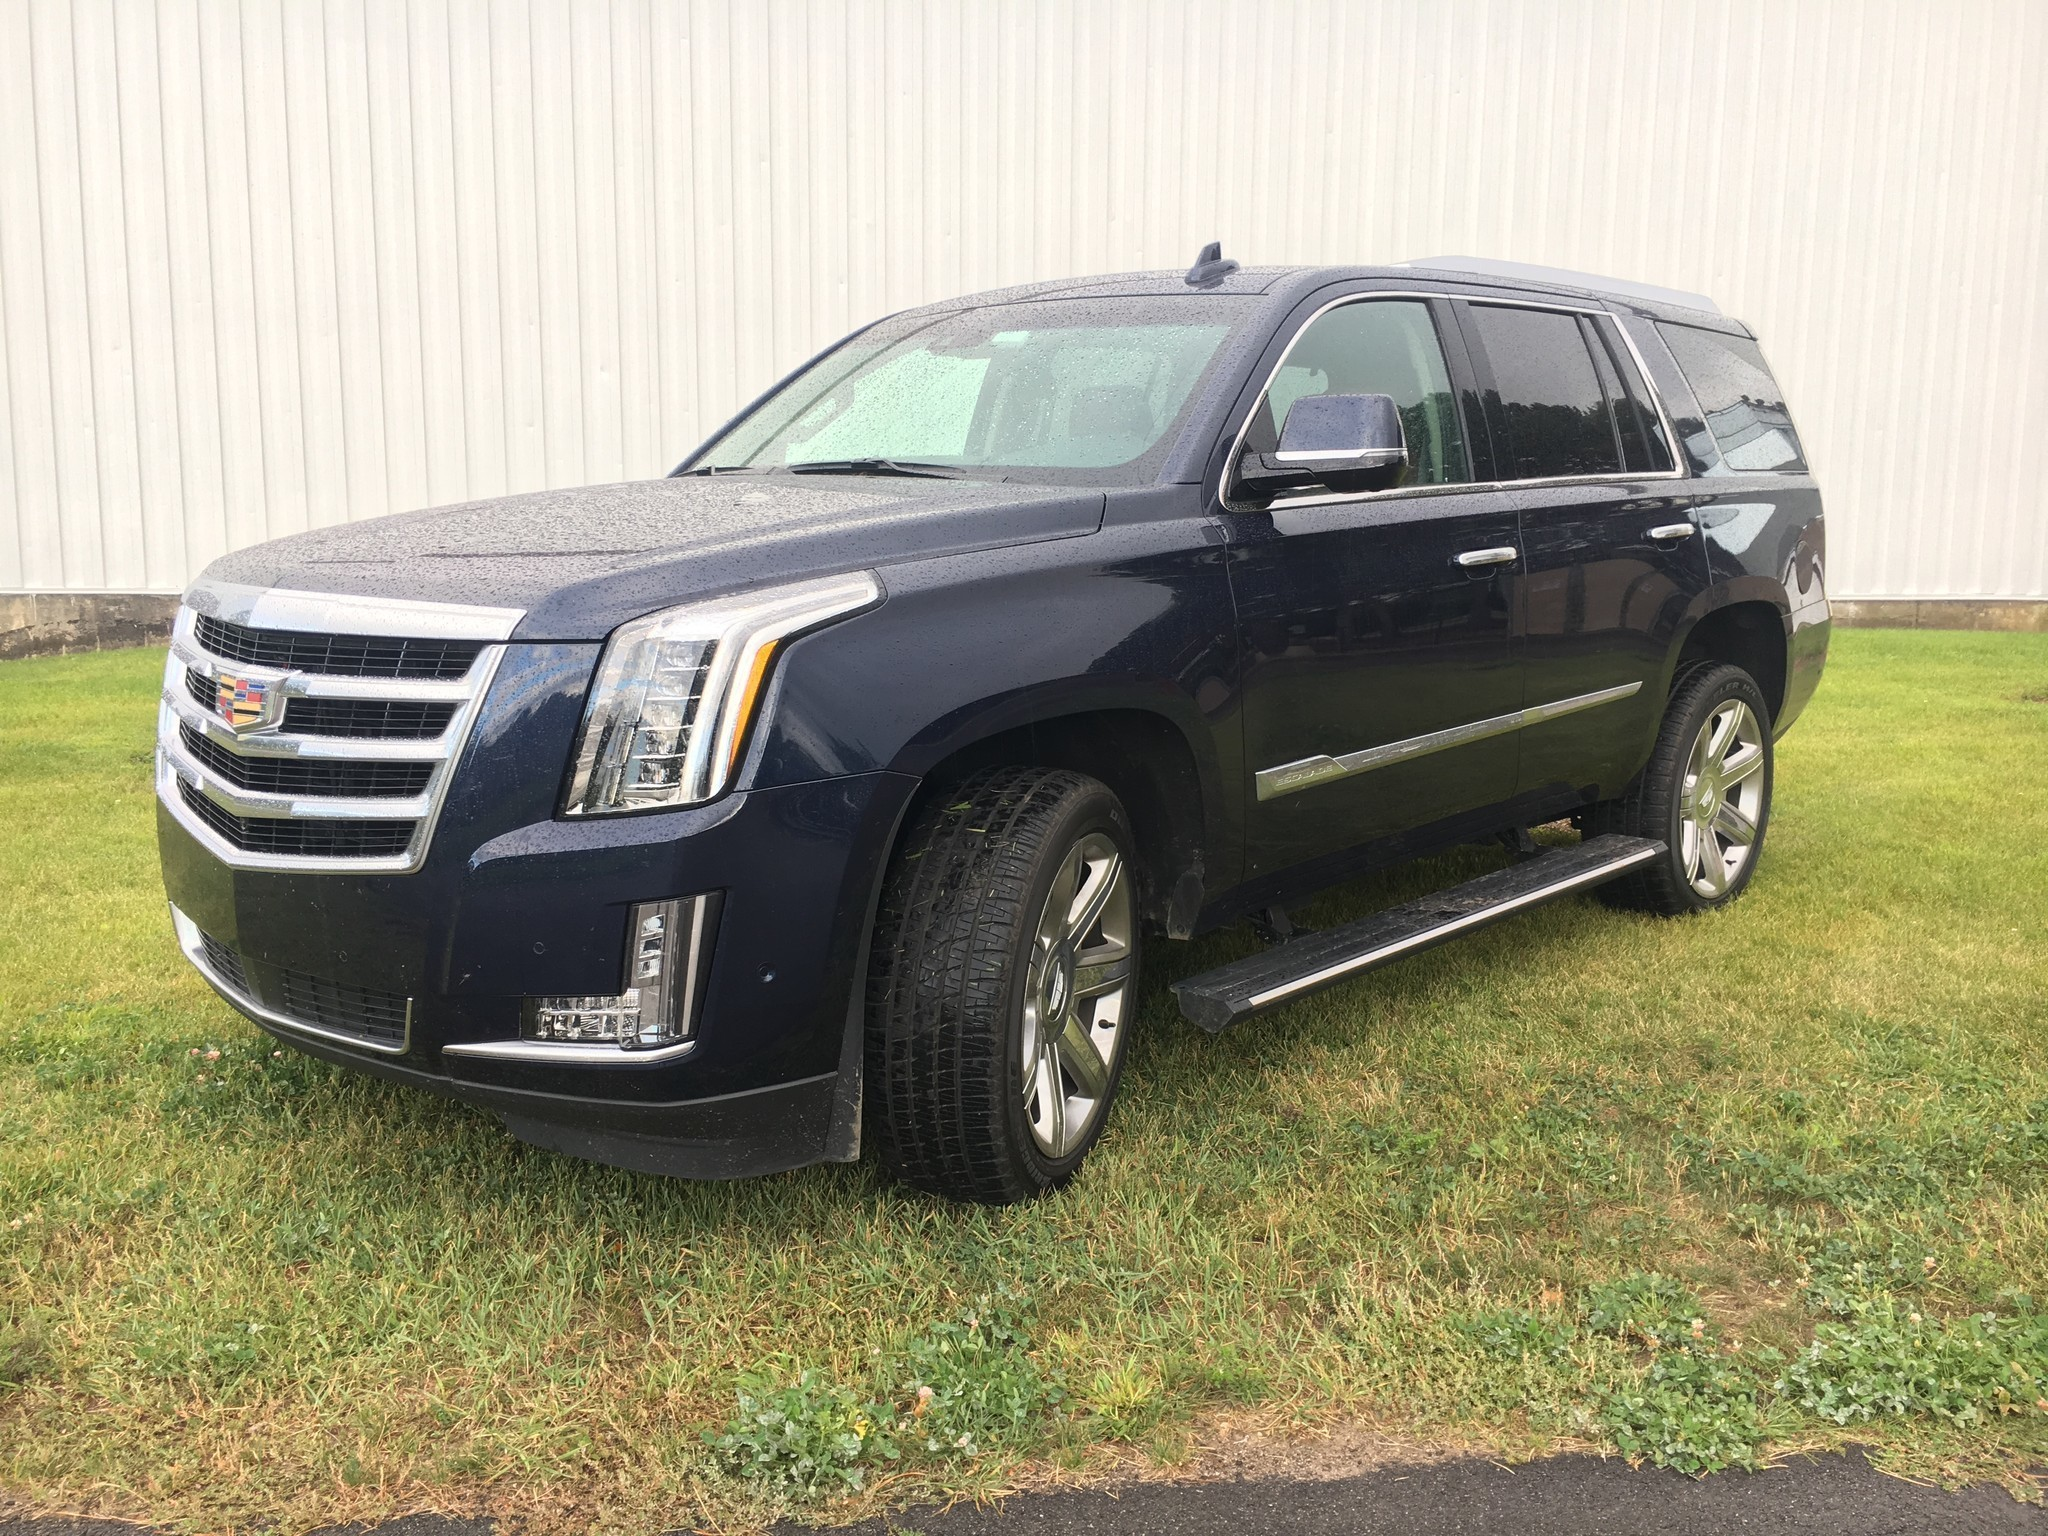 auto review 2017 cadillac escalade full size suv comes up short chicago tribune. Black Bedroom Furniture Sets. Home Design Ideas